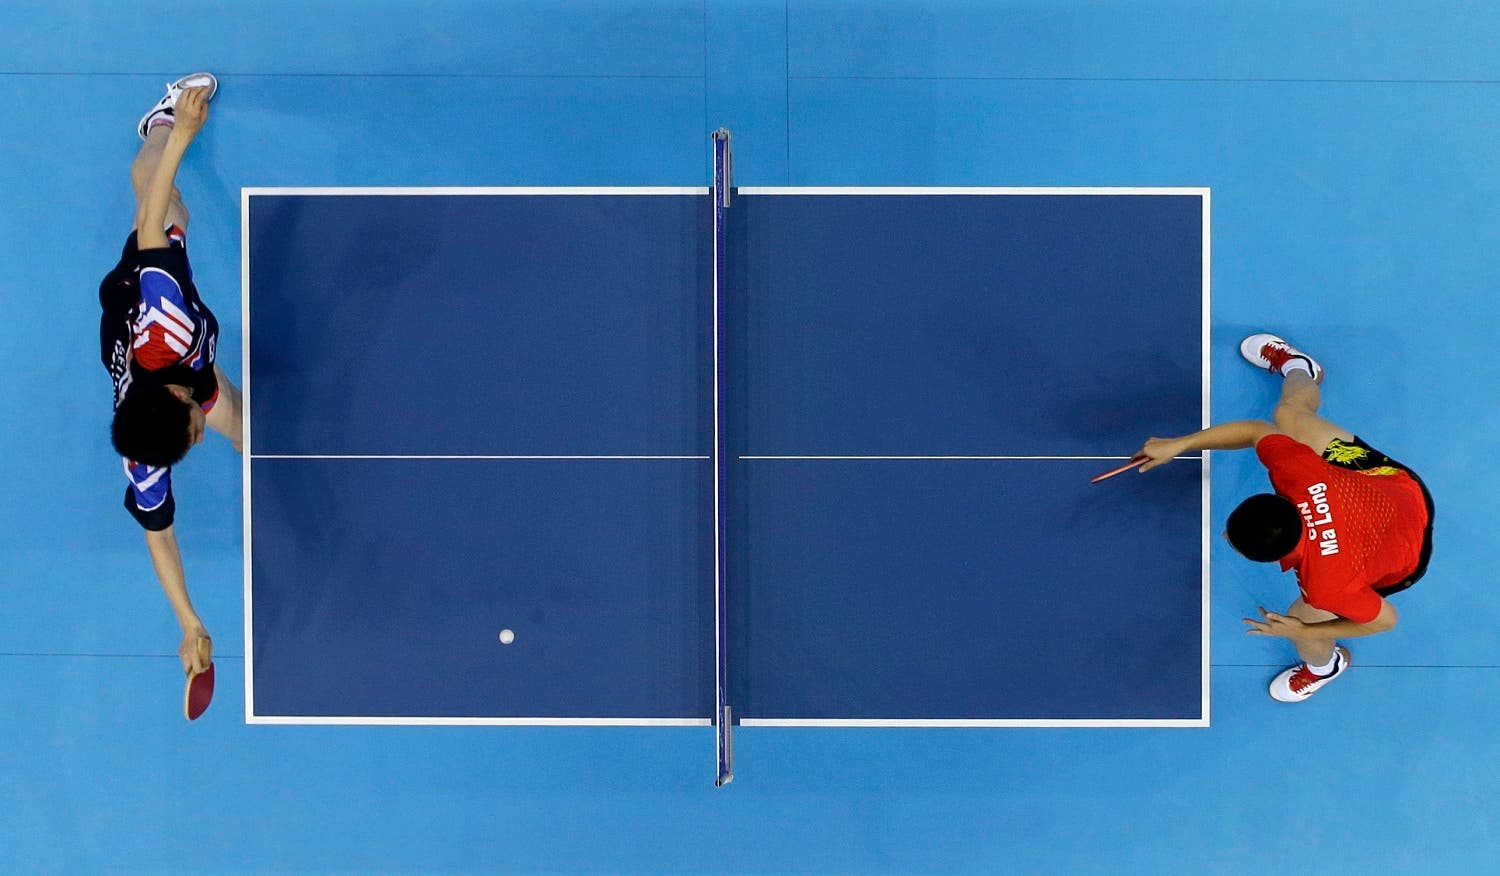 Ma Long of China competes against Ryu Seungmin of South Korea, left, in the men's team table tennis gold medal match at the 2012 Summer Olympics, Wednesday, Aug. 8, 2012, in London. (AP)